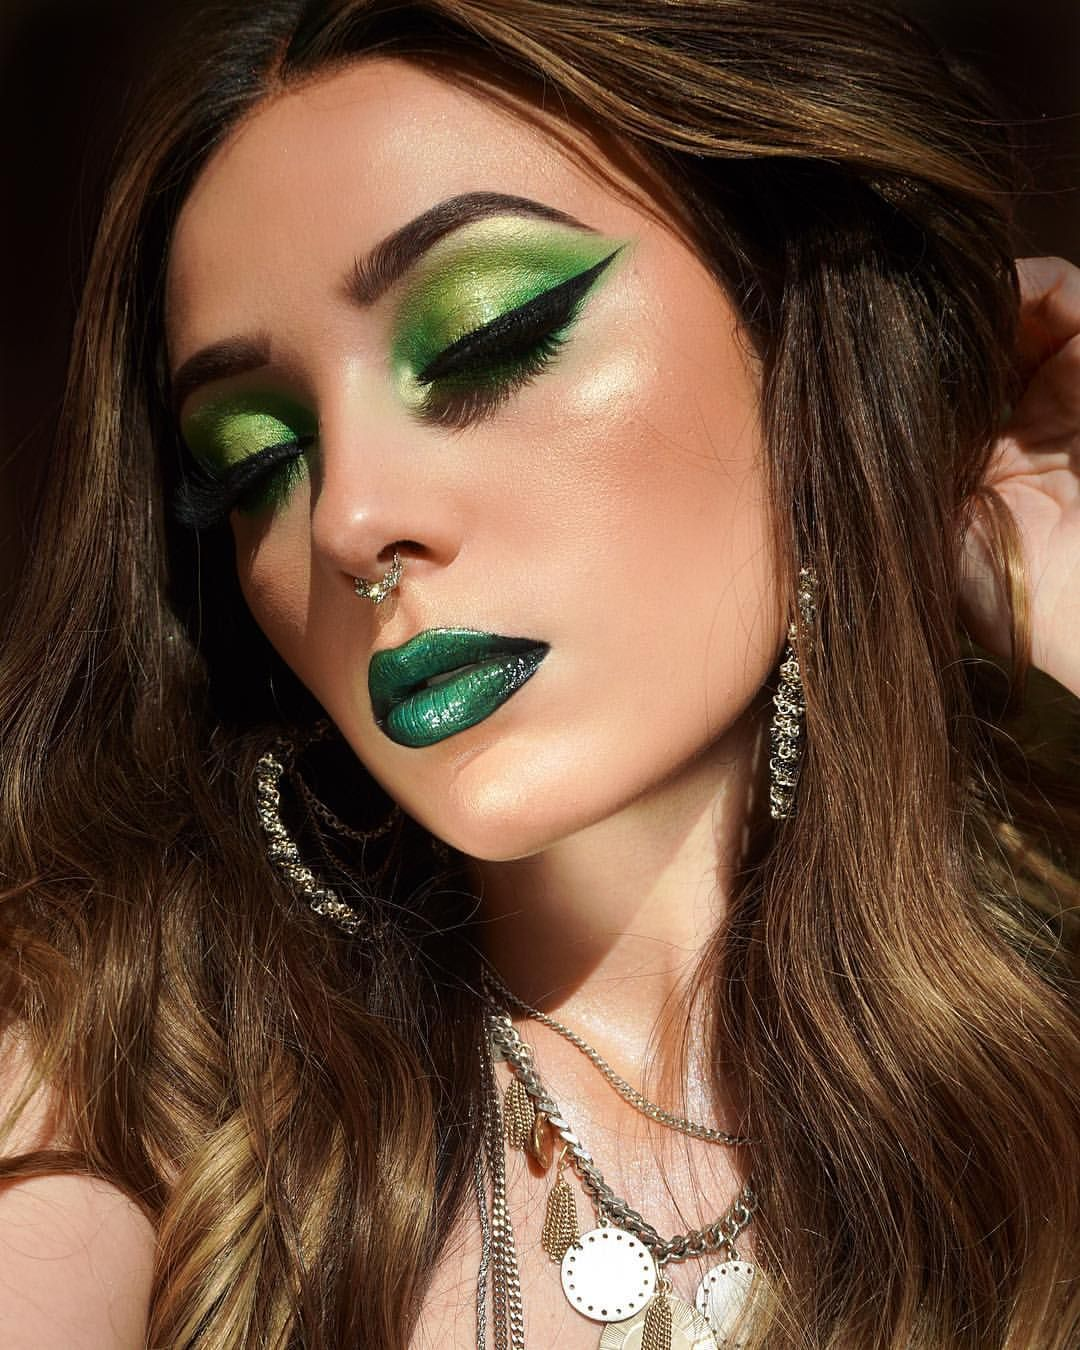 Today's look! Now I think I want a green apple 🍏 I was